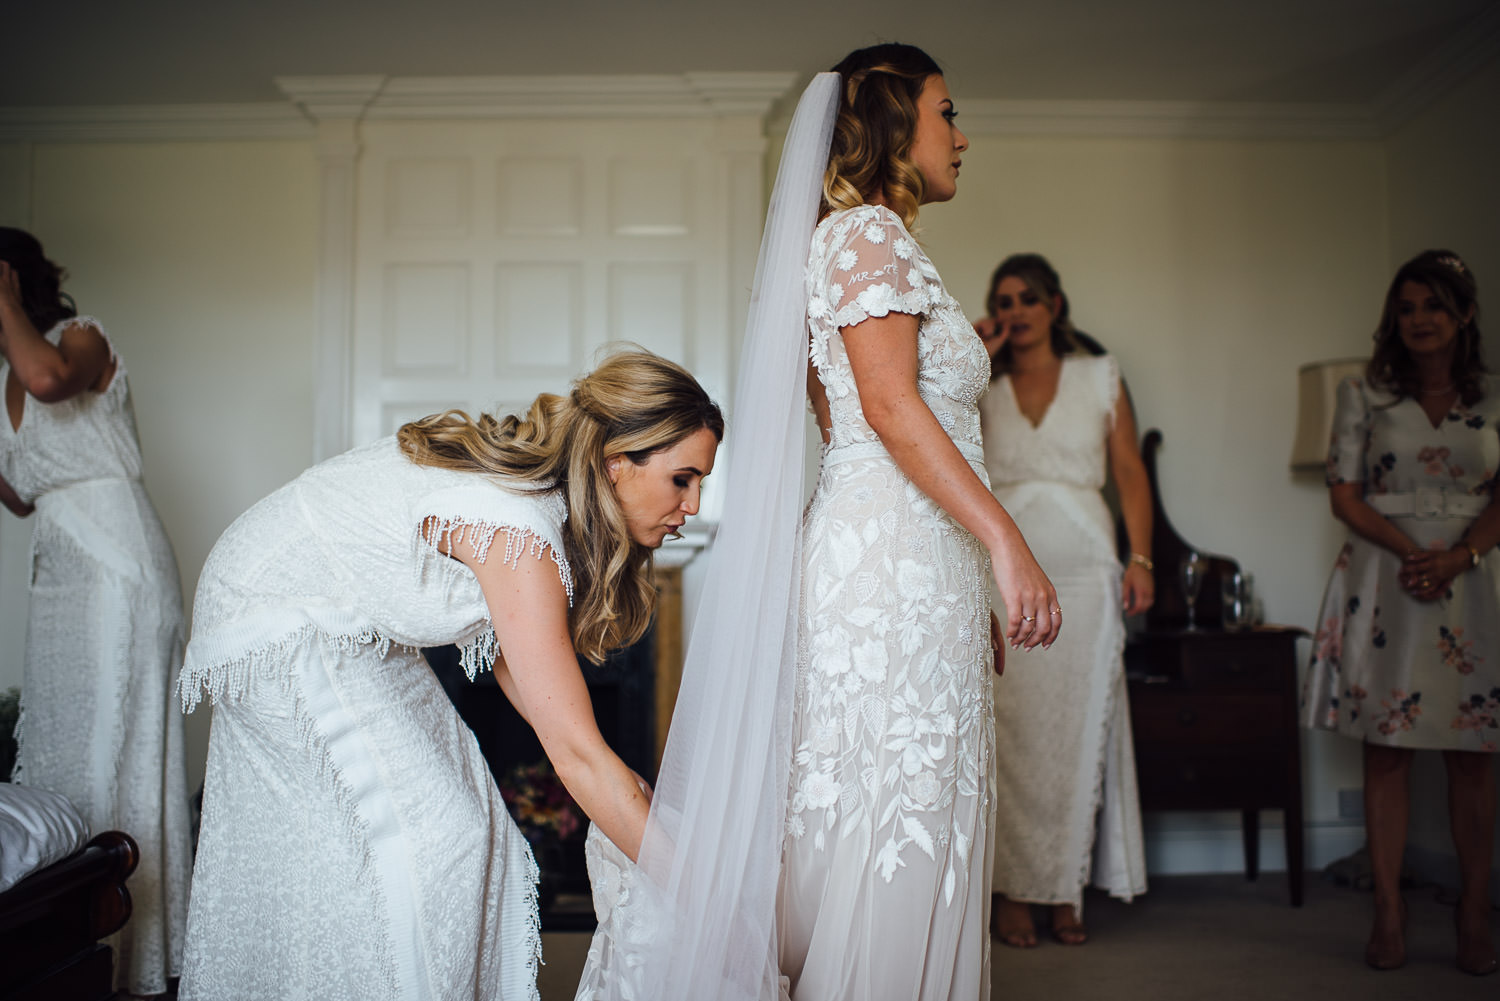 Bride putting on hermione de paula wedding dress